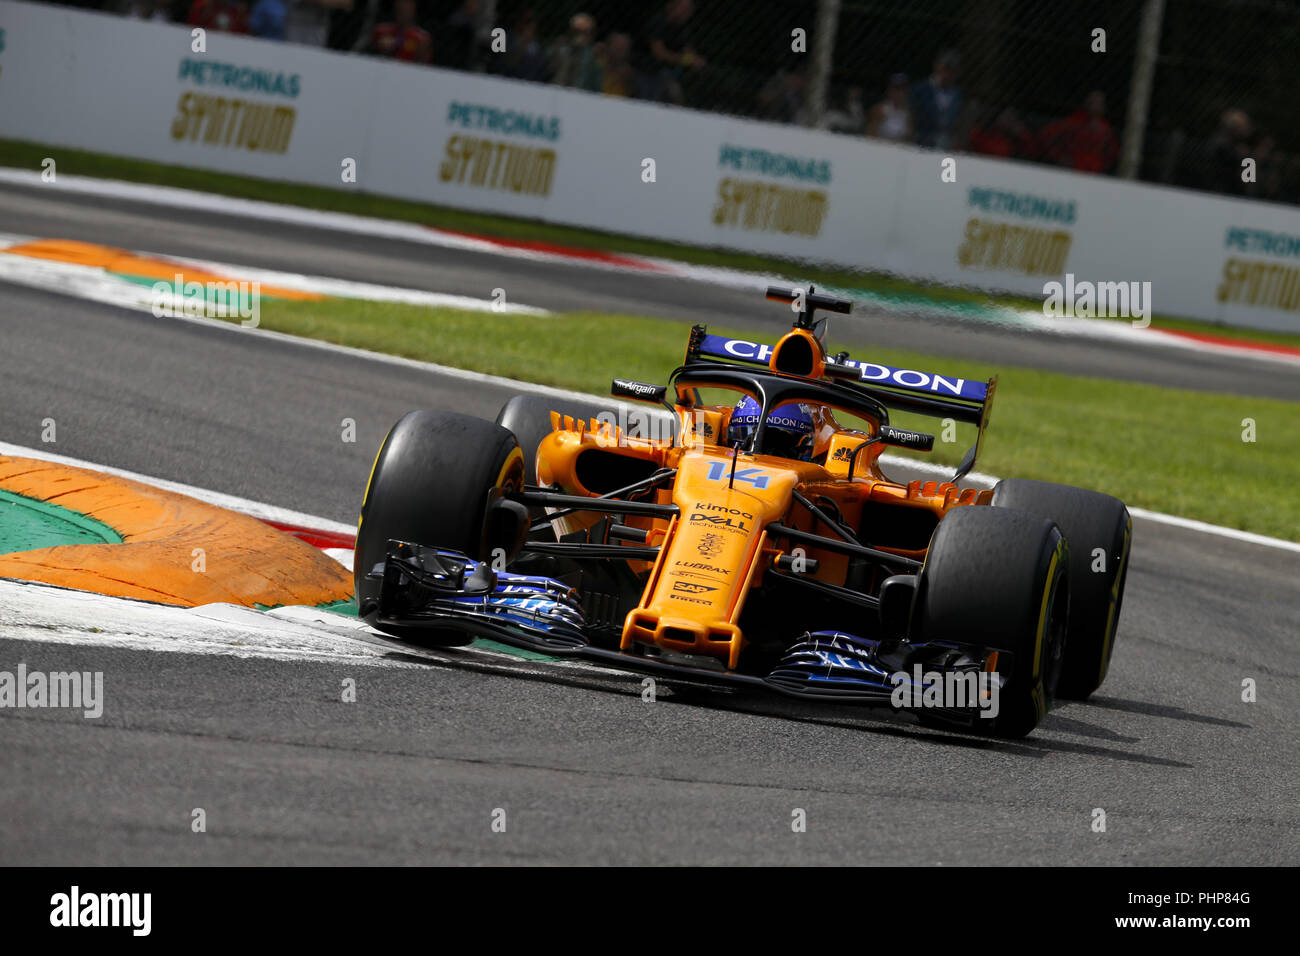 motorsports: fia formula one world championship 2018, grand prix of